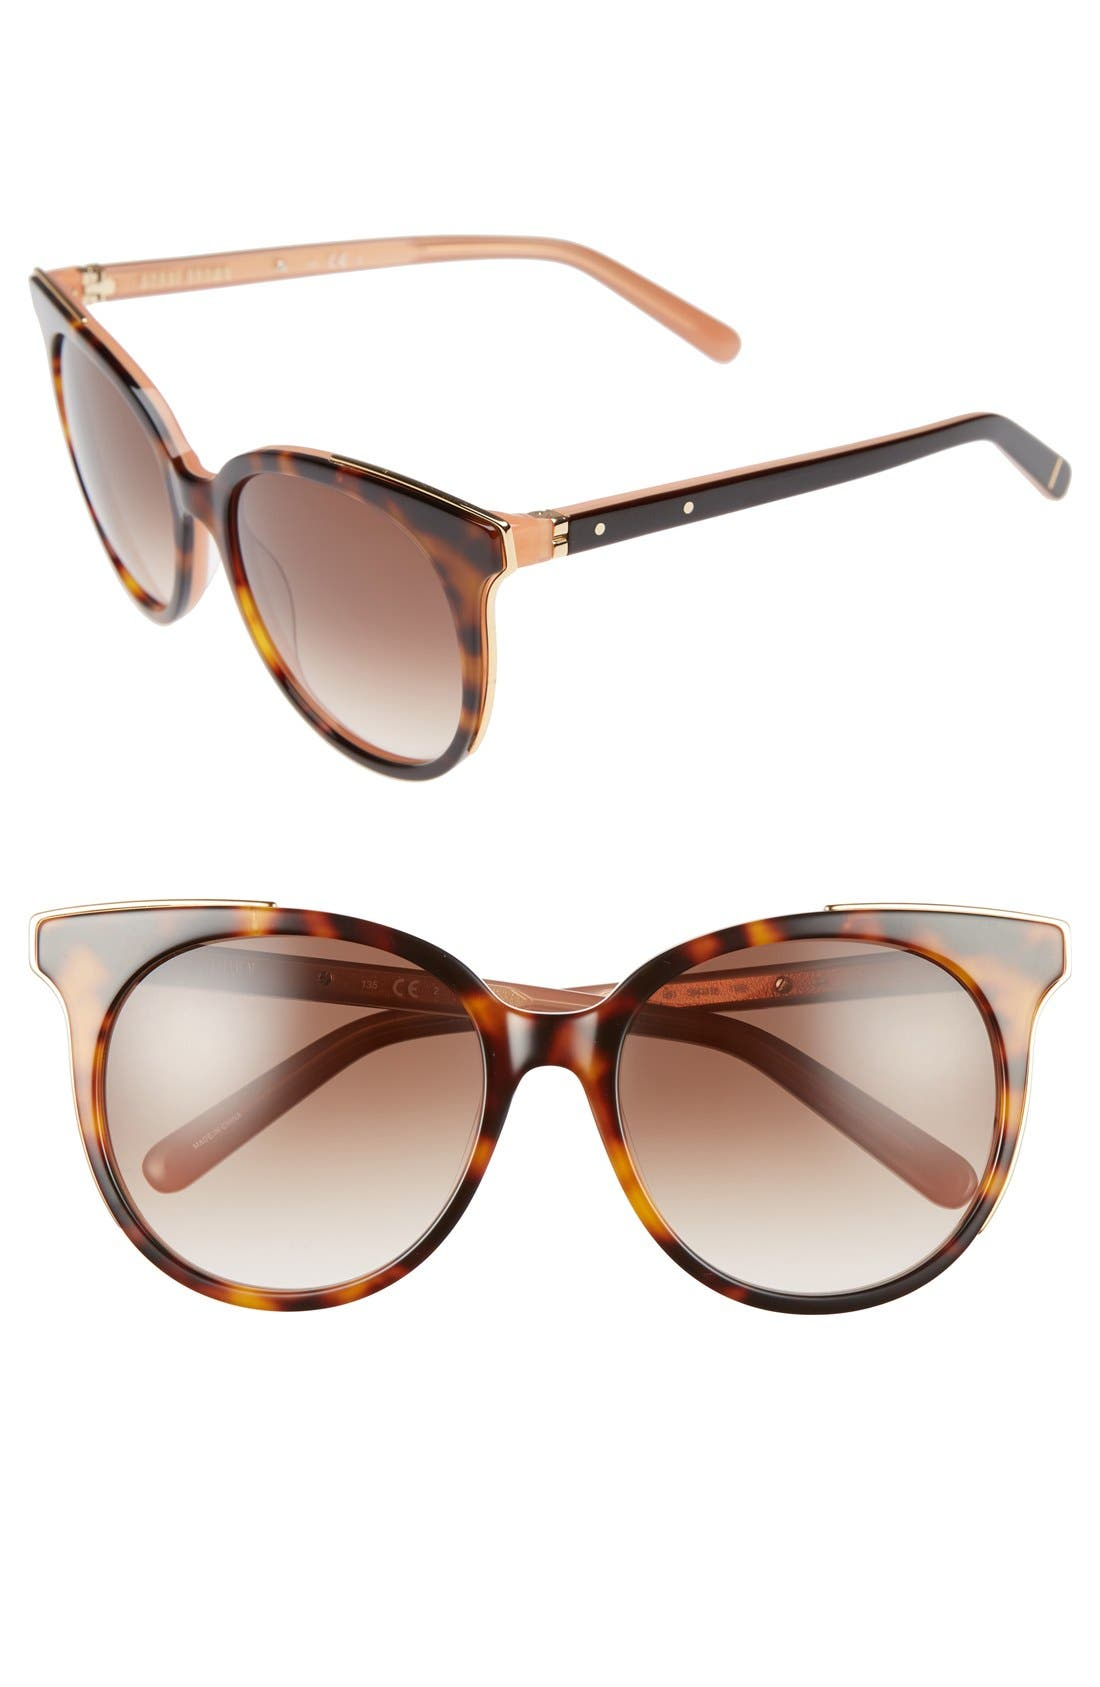 Main Image - Bobbi Brown 'The Lucy' 54mm Sunglasses